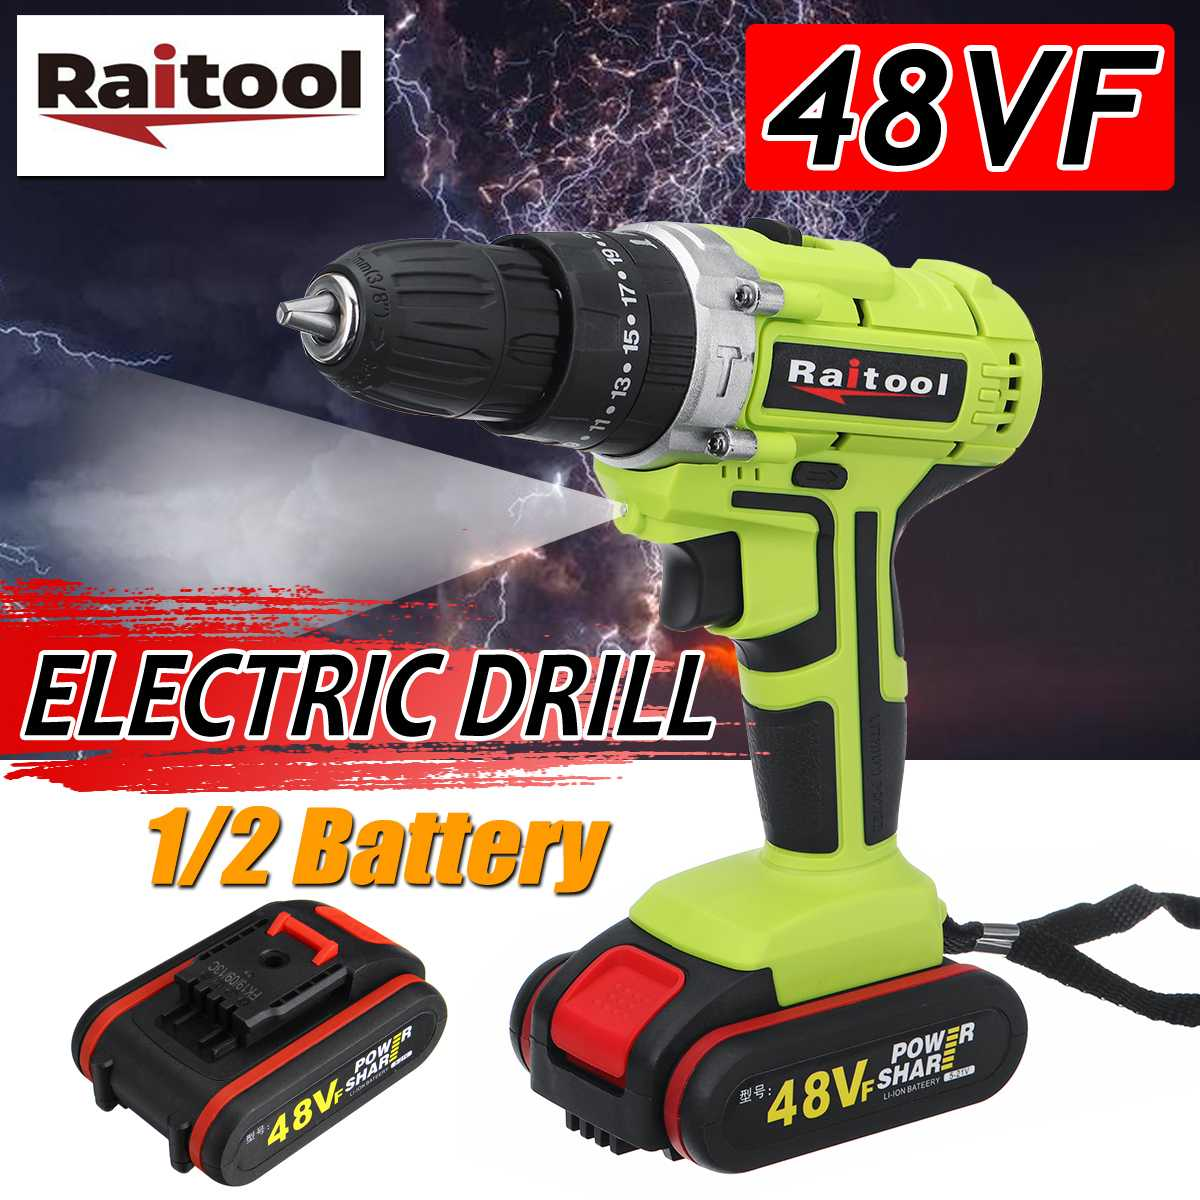 25+3 Torque 48V Cordless Electric Impact Drill Li-ion Battery Screwdriver DIY Home Hand Flat Drill LED Working Light Power Tools